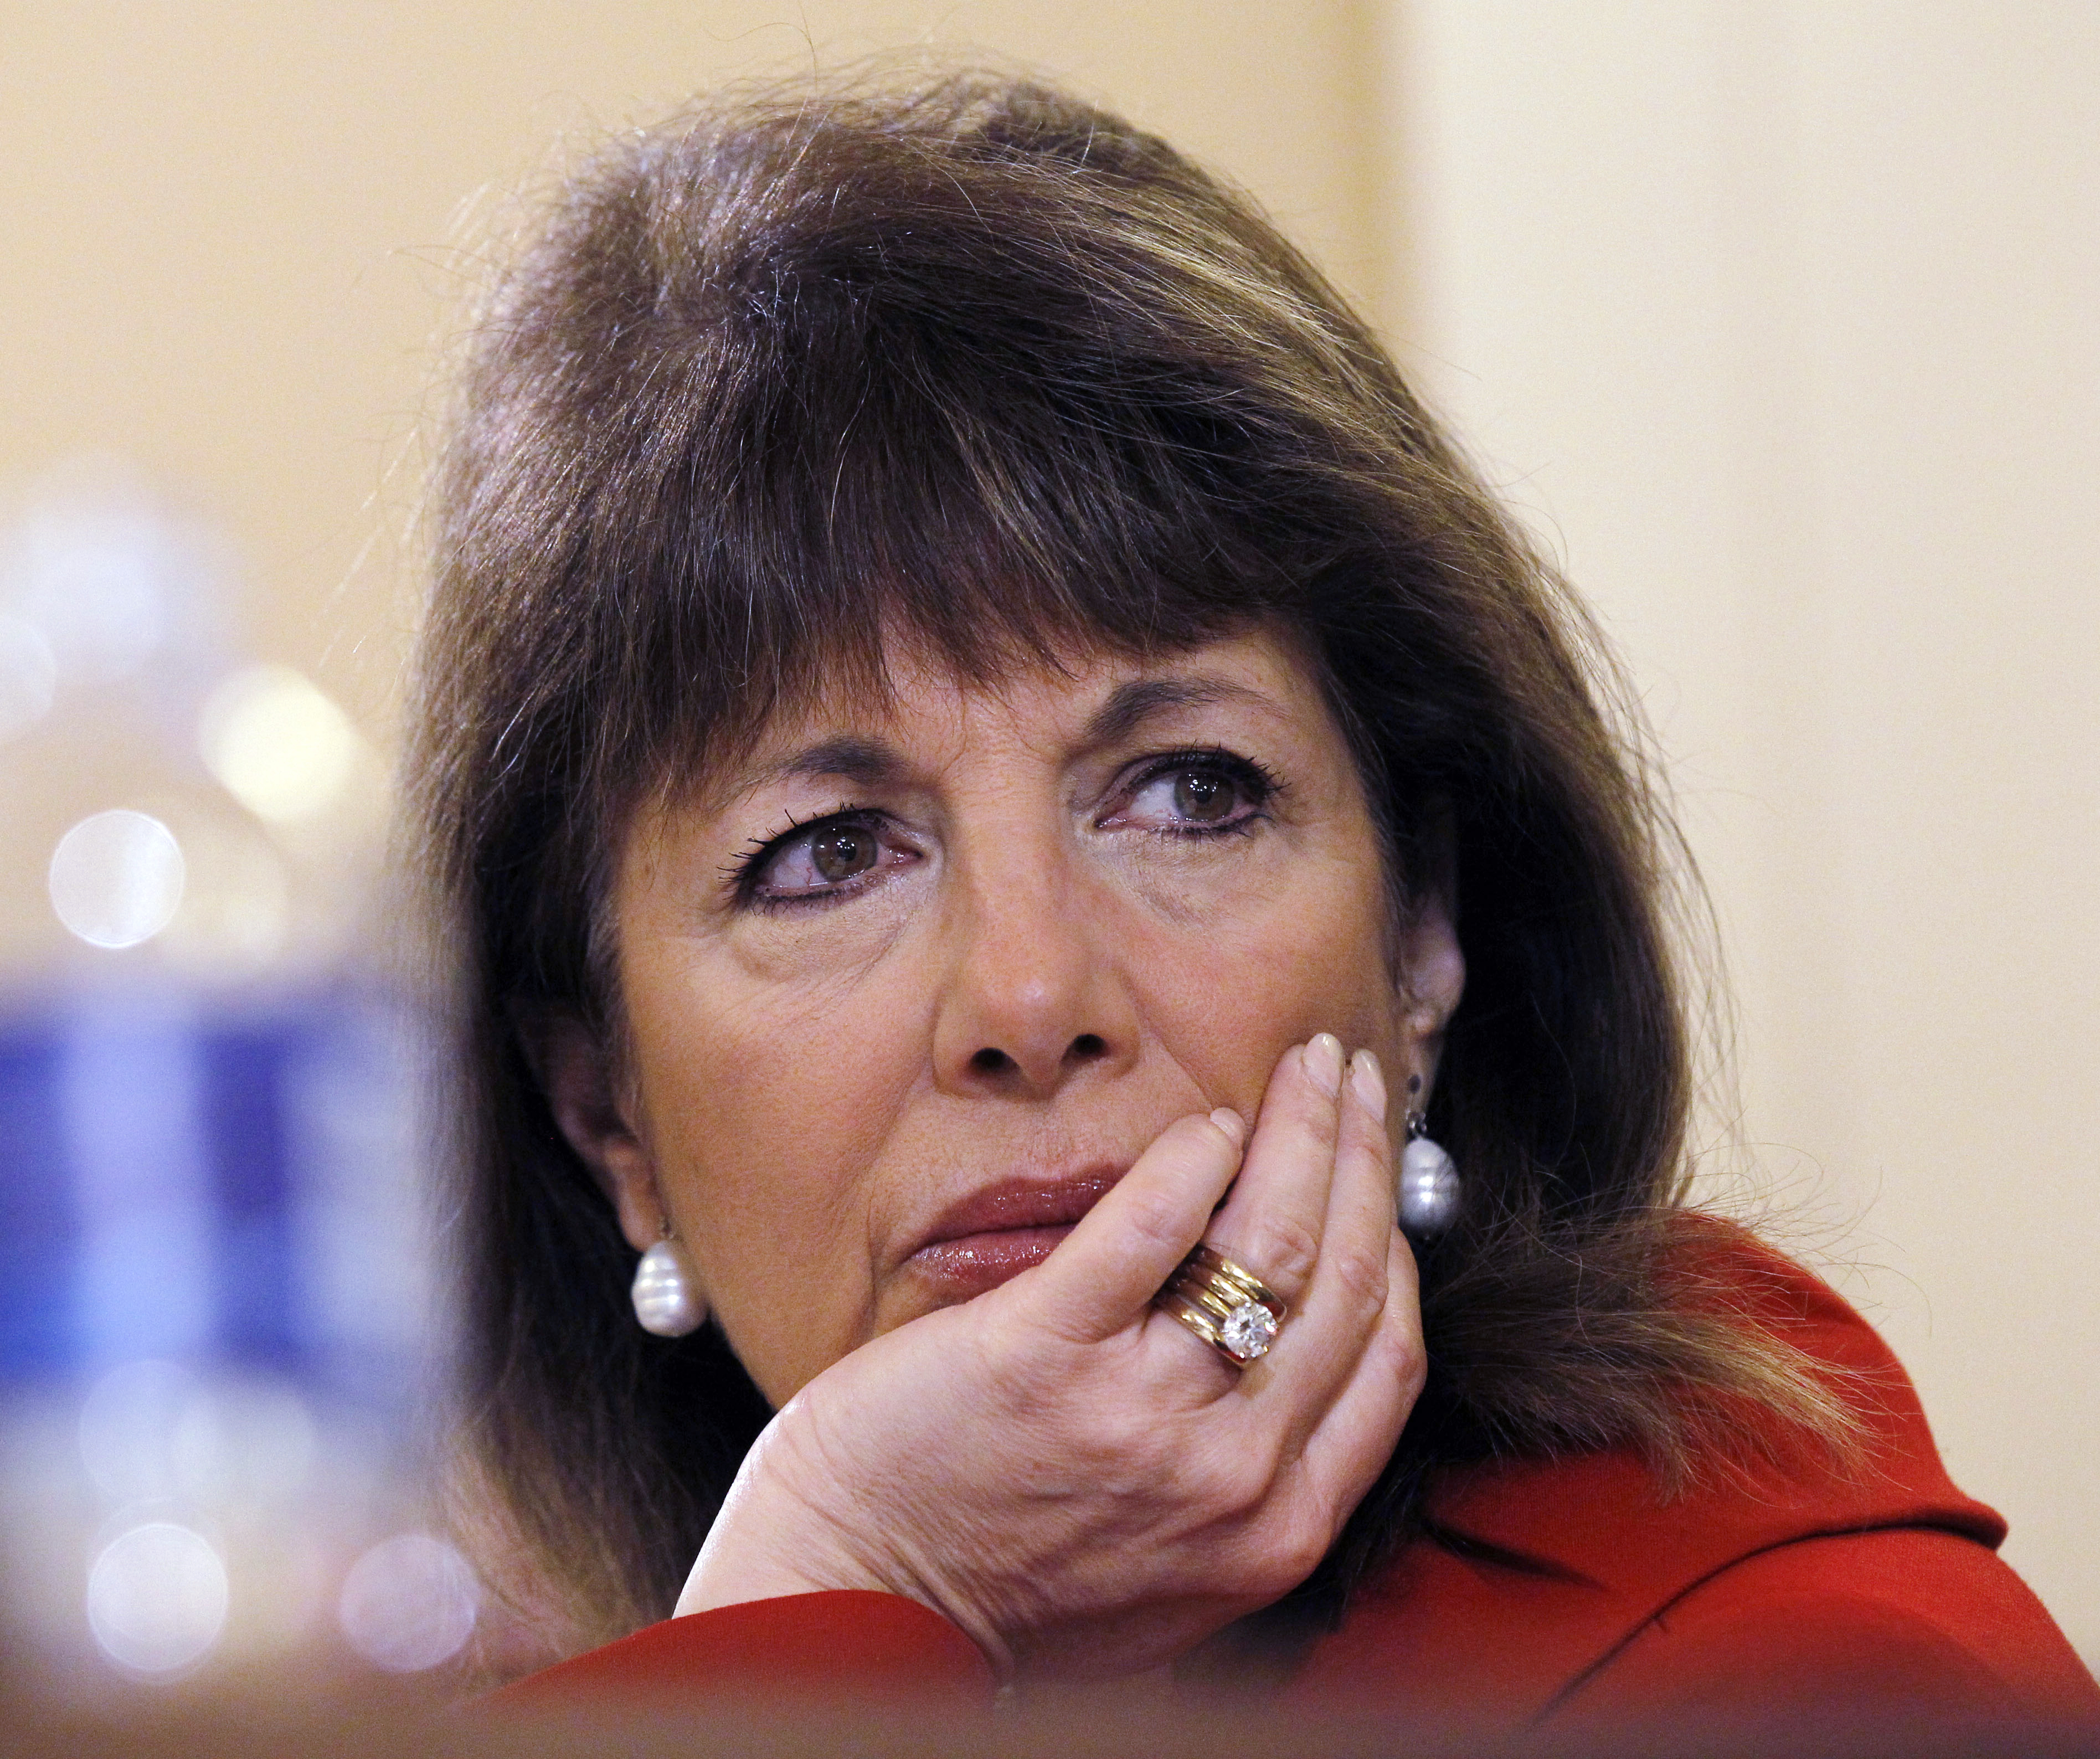 FILE - In this March 10, 2011, file photo, Rep. Jackie Speier D-Calif., listens to testimony during a hearing on Capitol Hill in Washington. One current and three former female members of Congress tell The Associated Press they have been sexually harassed or subjected to hostile sexual comments by their male colleagues while serving in the House. Speier of California has recently gone public with an account of being sexually assaulted by a male chief of staff while she was a congressional staffer. (AP Photo/Alex Brandon, File)